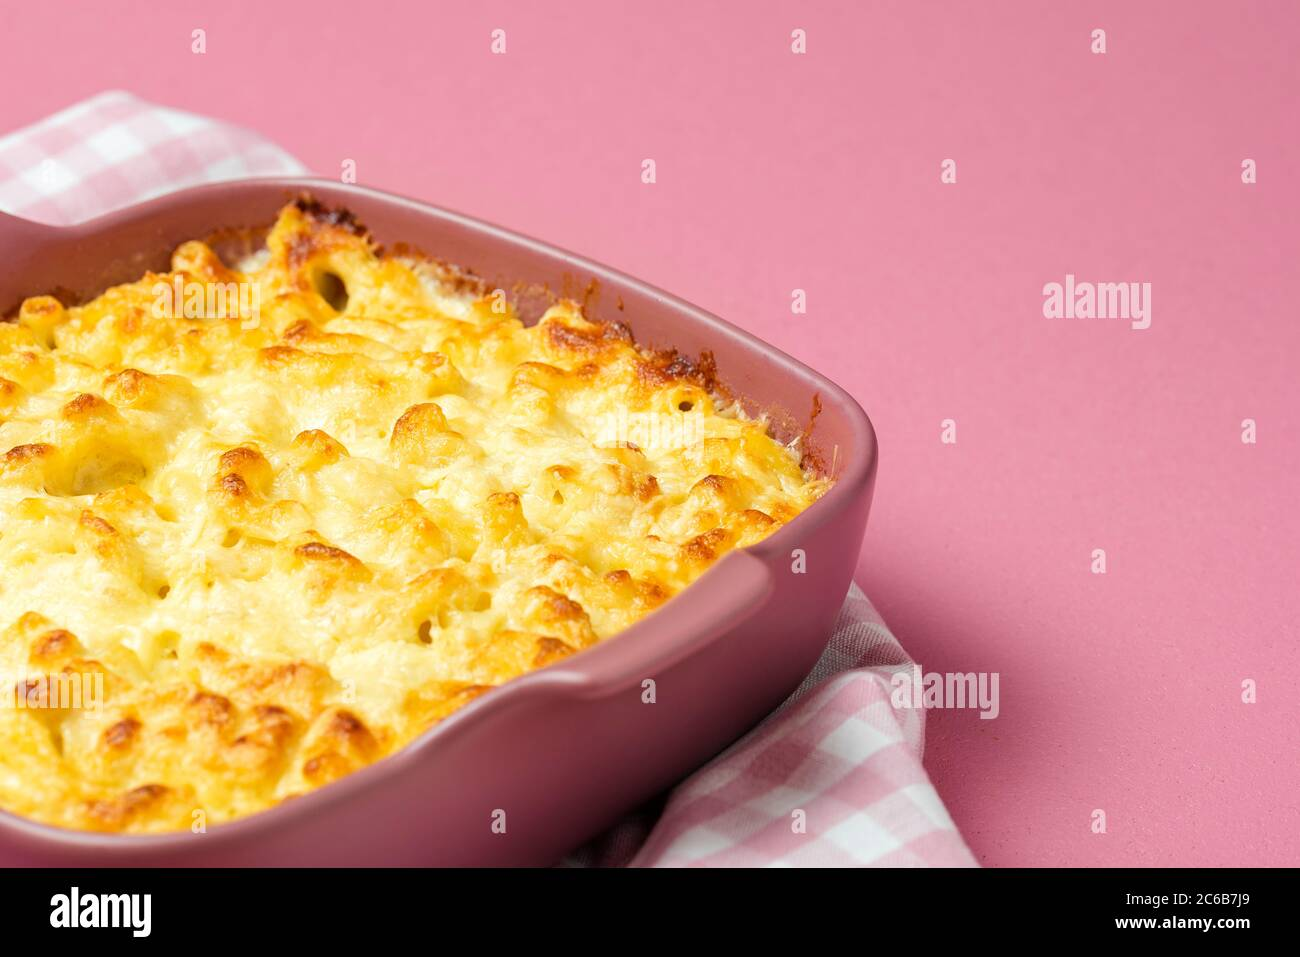 Mac And Cheese Cooked With Bechamel Sauce In A Pink Tray Close Up With Macaroni And Cheese In An Oven Tray On A Pink Background Stock Photo Alamy Download 94,144 pink background free vectors. https www alamy com mac and cheese cooked with bechamel sauce in a pink tray close up with macaroni and cheese in an oven tray on a pink background image365353137 html